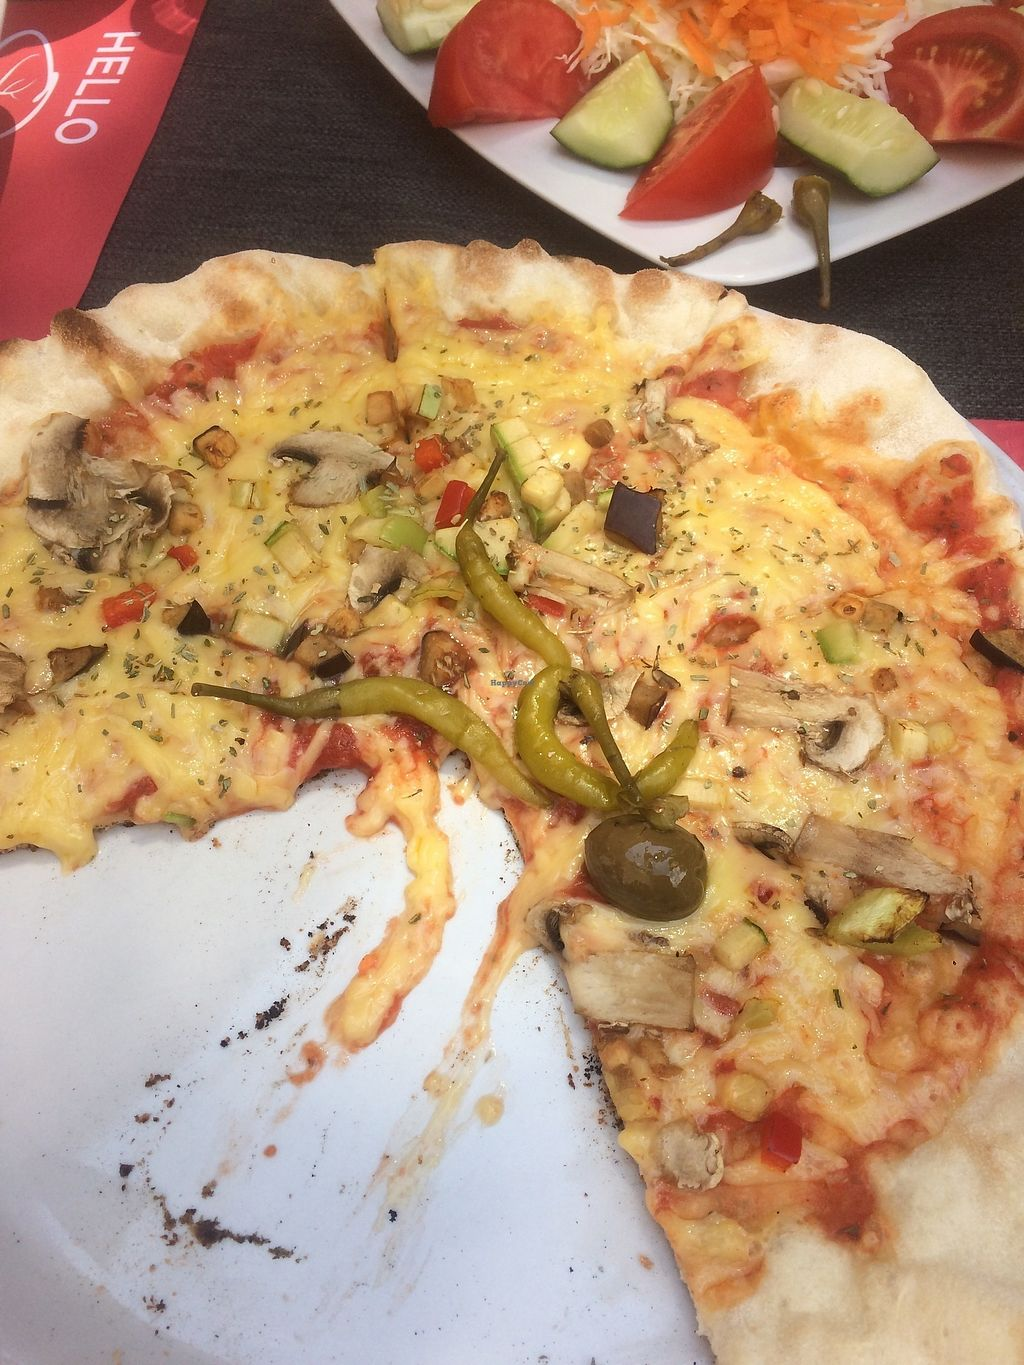 "Photo of Ombra Caffe & Lounge Bar  by <a href=""/members/profile/alison-mc"">alison-mc</a> <br/>Vegetarian pizza with vegan cheese <br/> July 16, 2017  - <a href='/contact/abuse/image/93597/281078'>Report</a>"